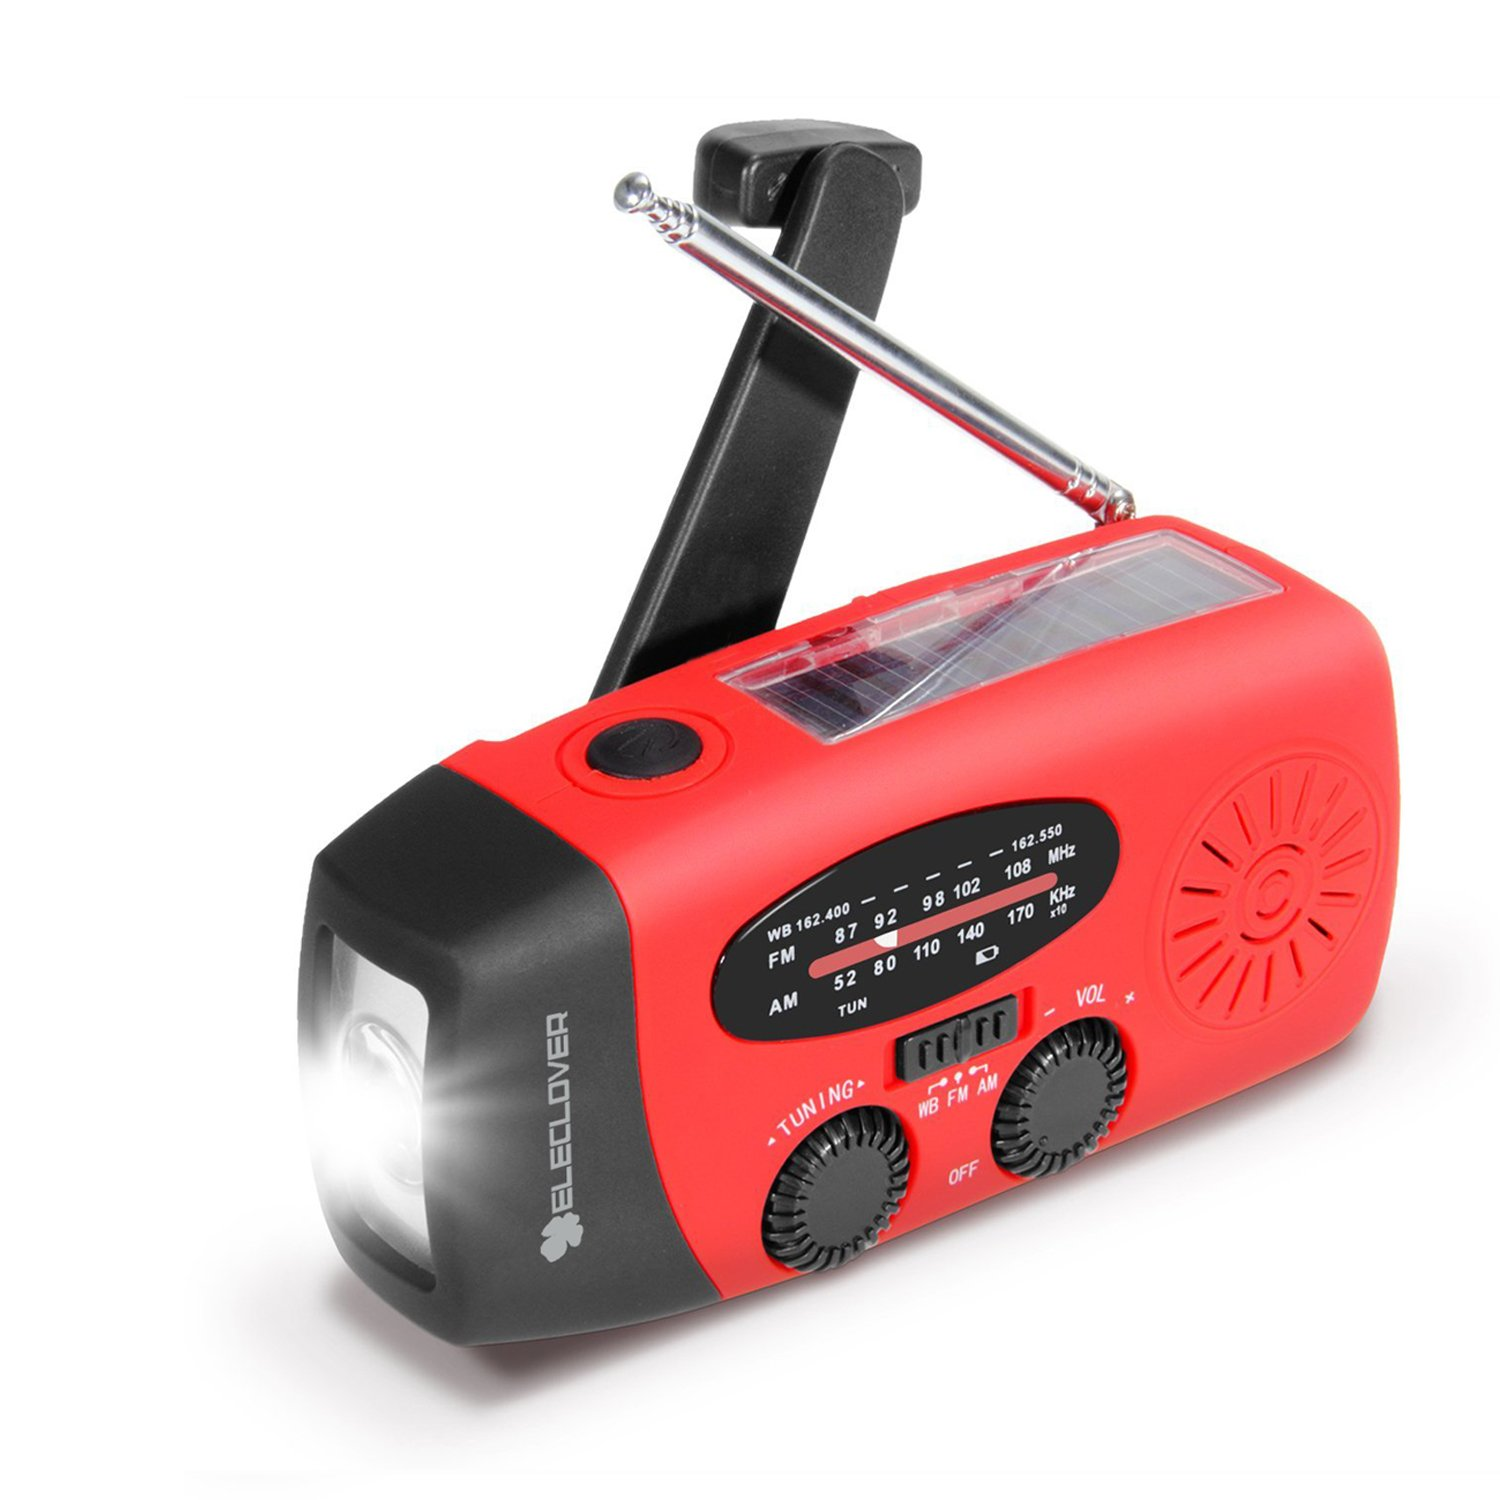 [Upgraded Version] ELECLOVER Portable Dynamo Emergency Solar Crank AM/FM/NOAA(WB) Weather Radio with LED Flashlight, Cell Phone Portable Charger, Red